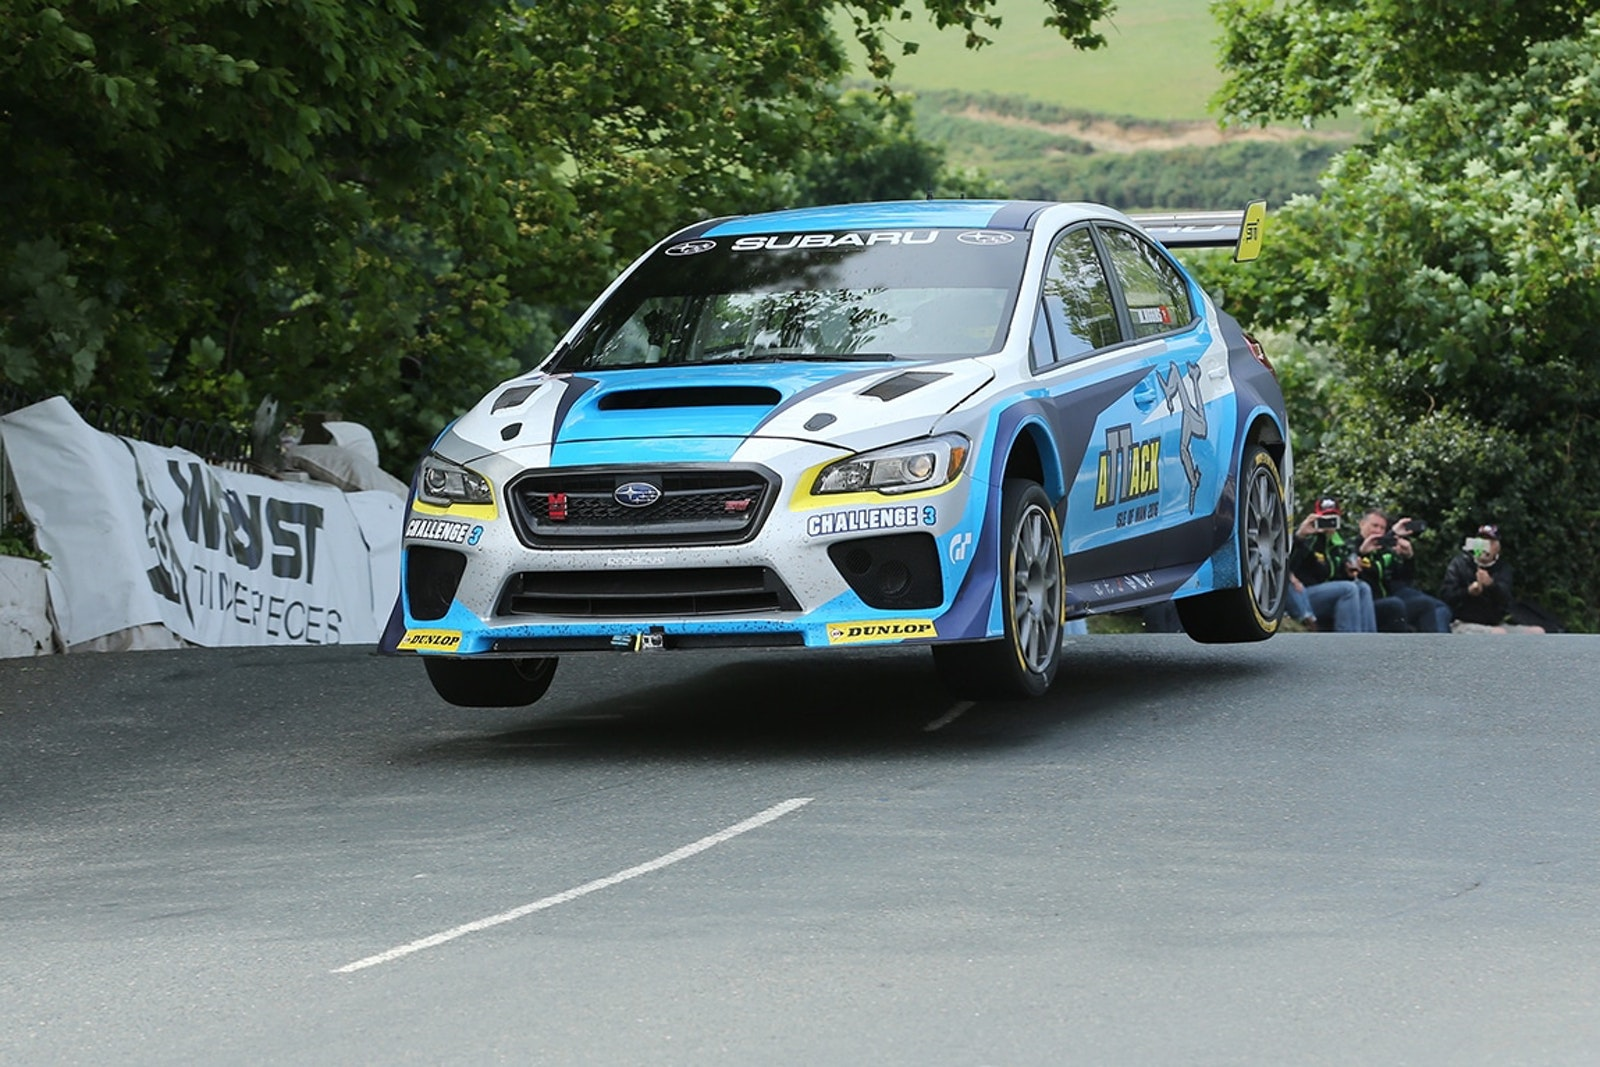 DAVE KNEEN/PACEMAKER PRESS, BELFAST: 04/06/2016: Mark Higgins in the Subaru WRX STI at Ballaugh Bridge during his record-breaking lap around the Isle of Man TT Course.